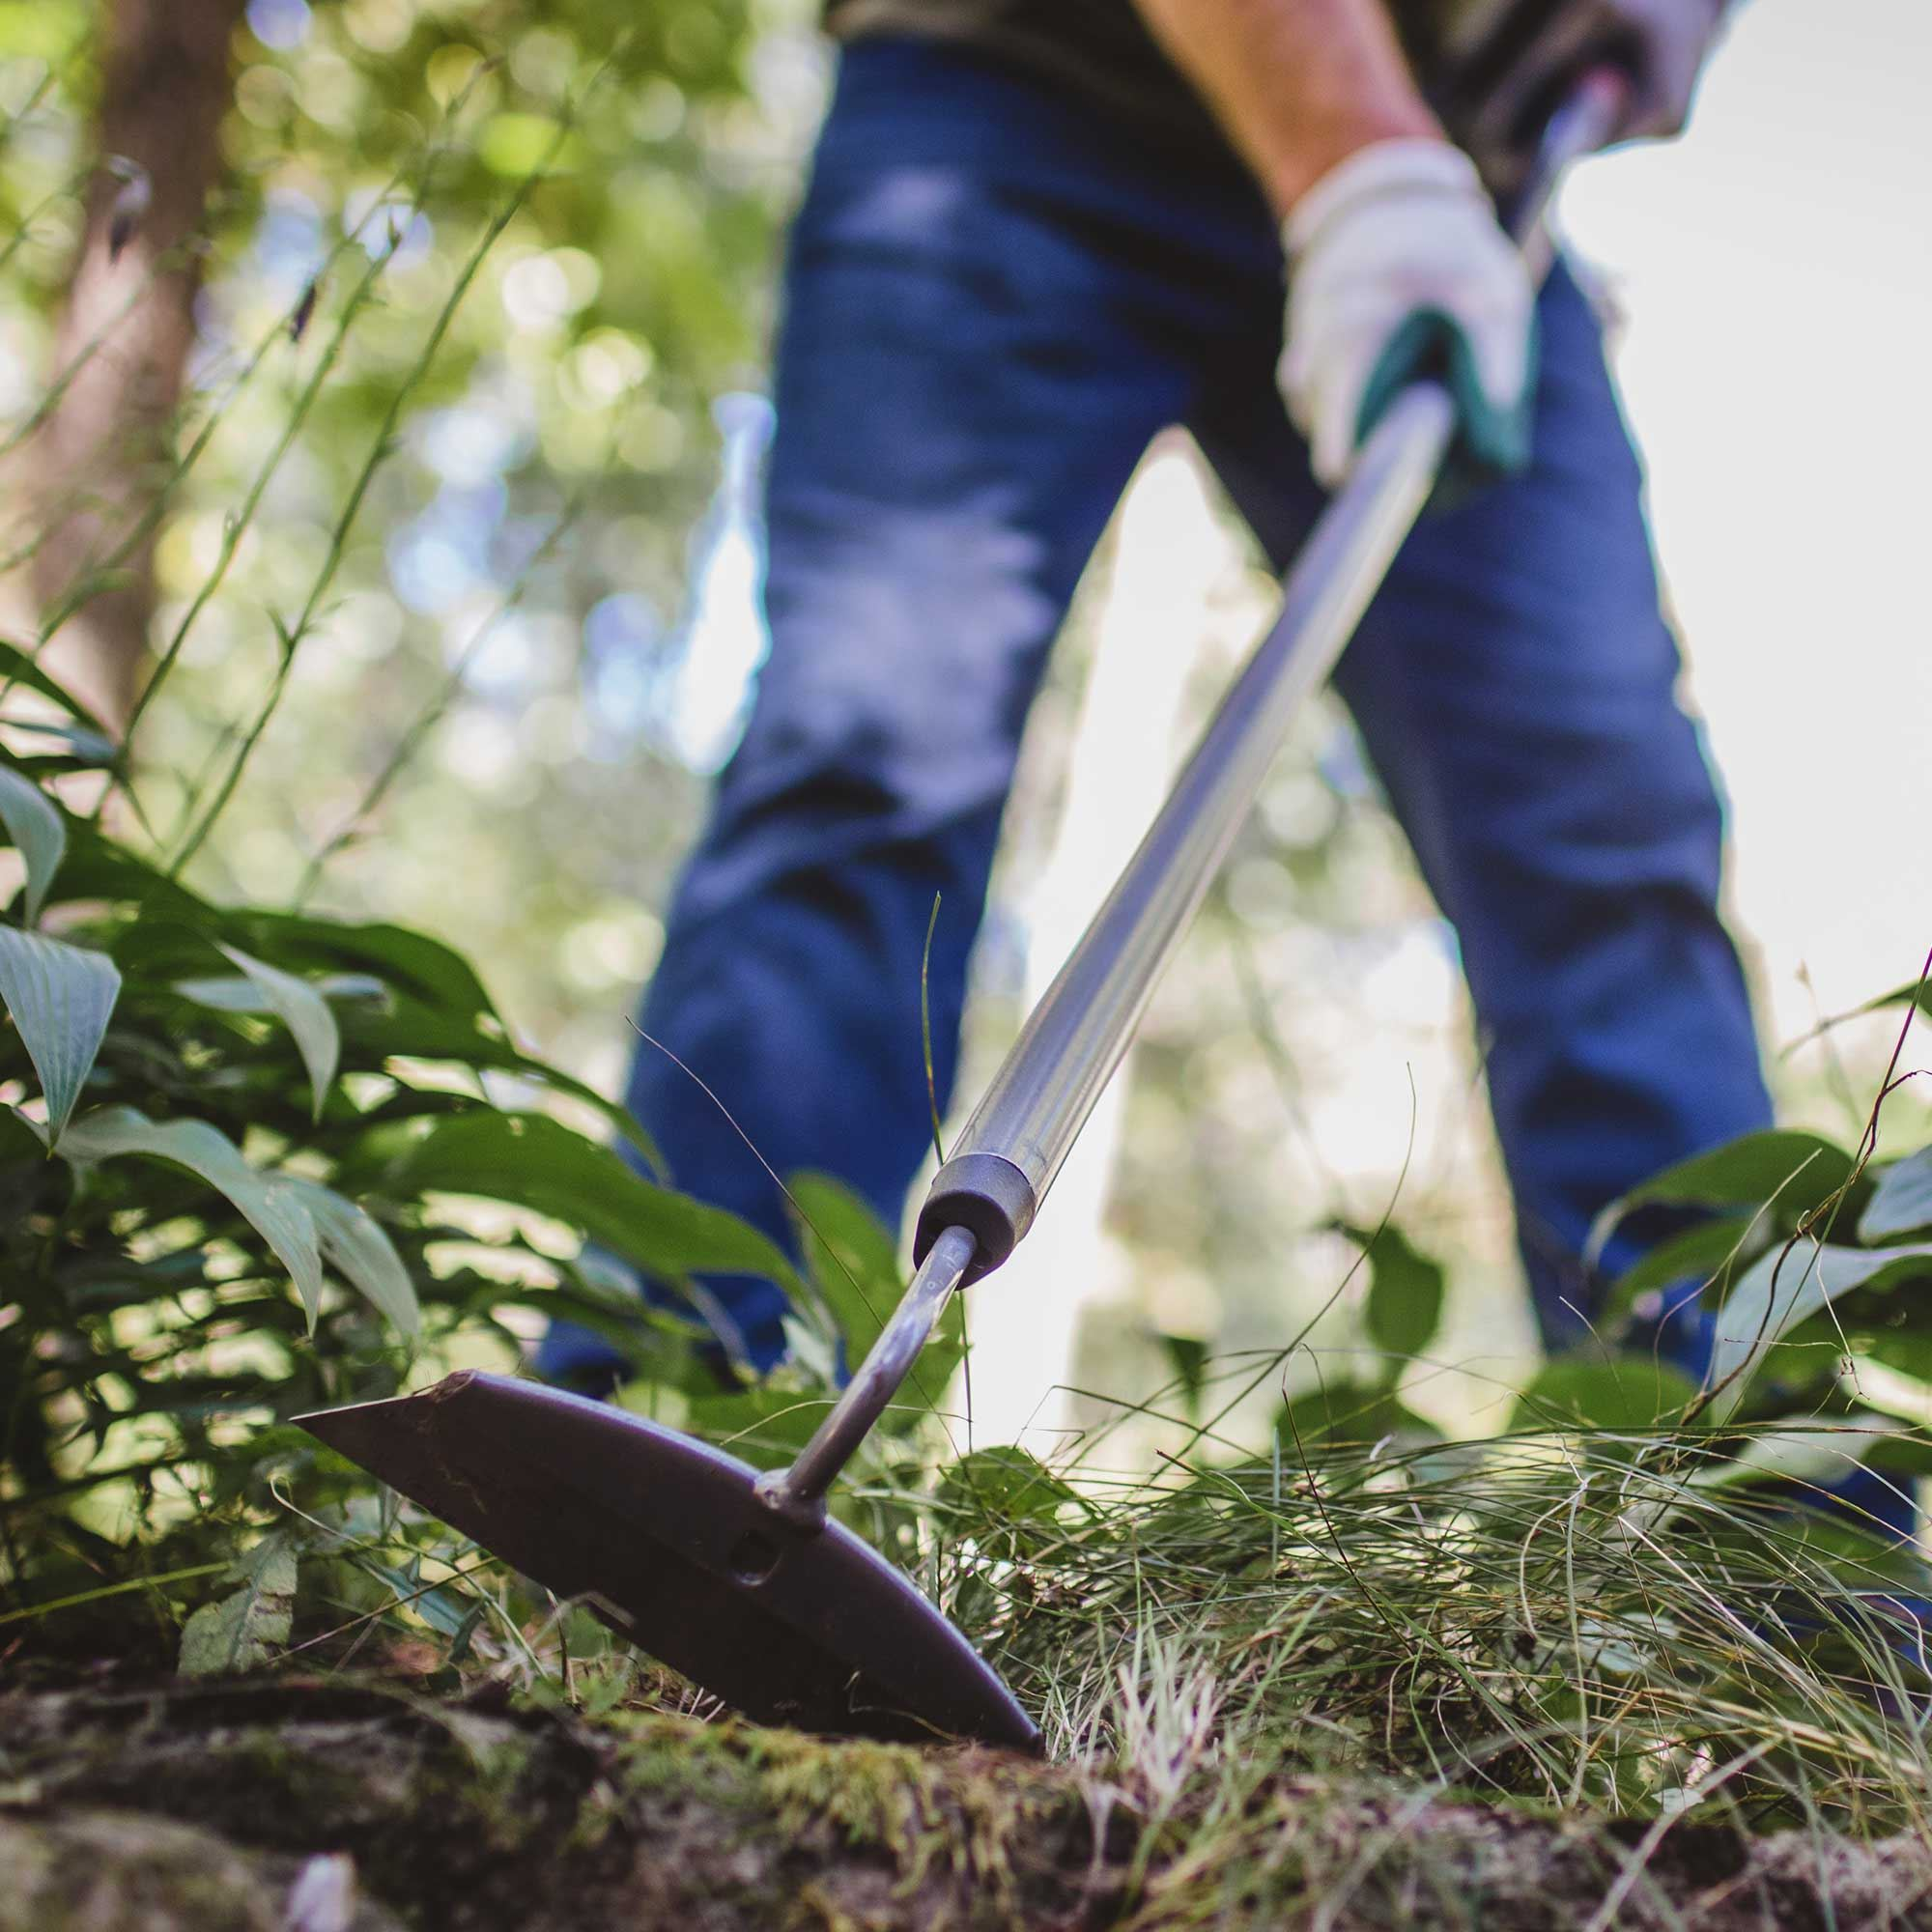 Weeding 101: How To Weed Your Garden